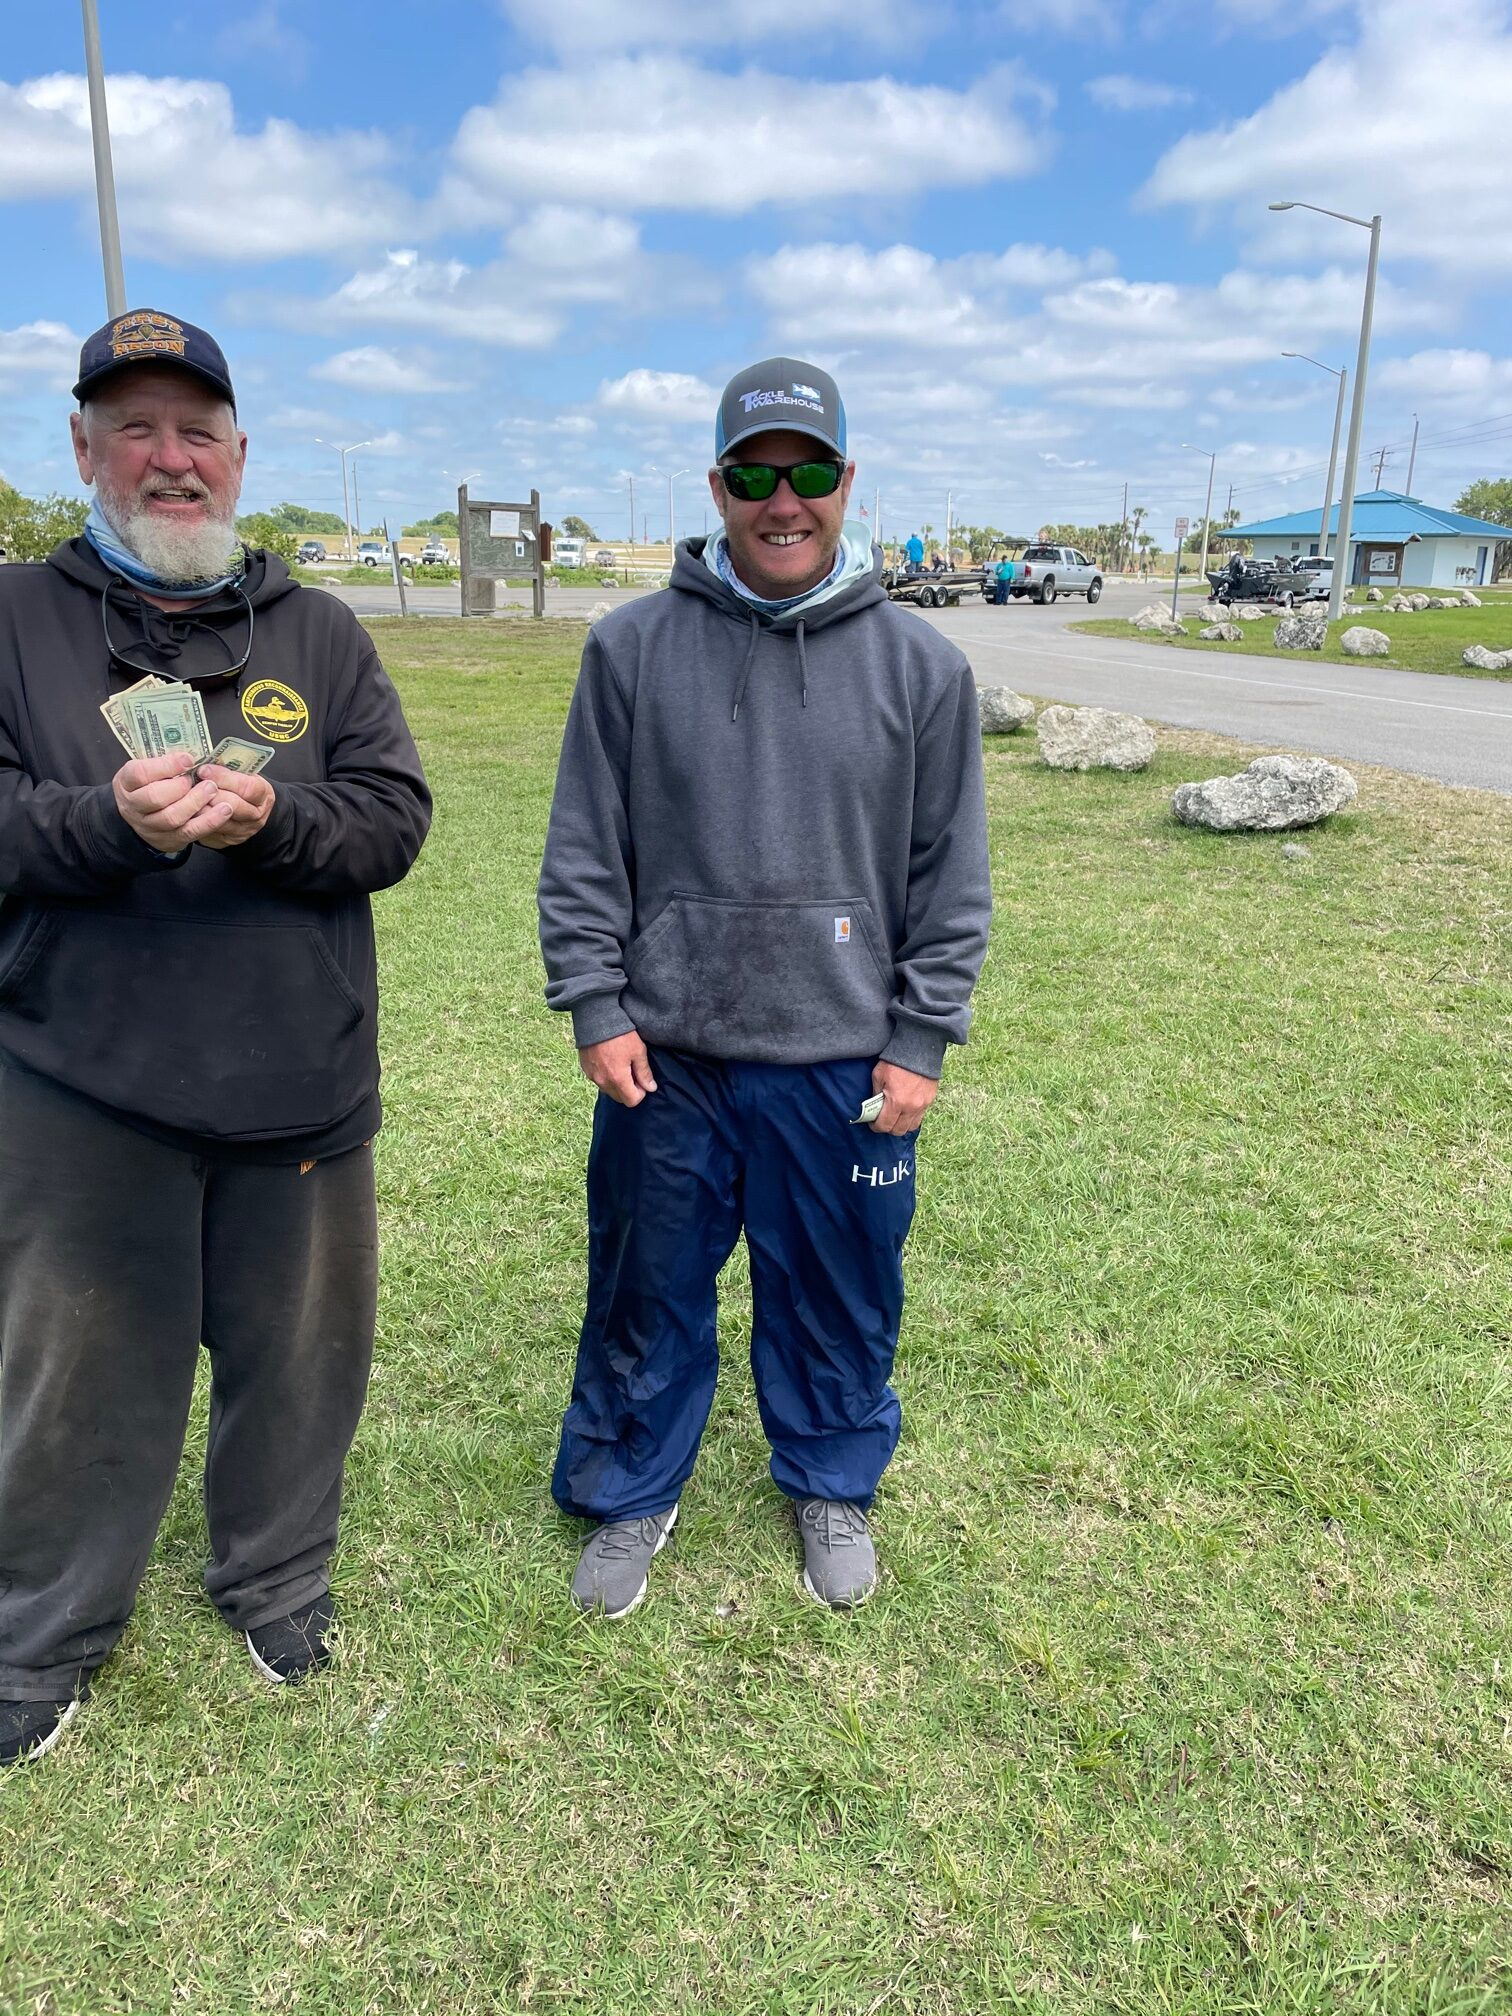 Don Streeter and Walter McClure - 1st and 2nd Place Angler - Lake Okeechobee - March 2021